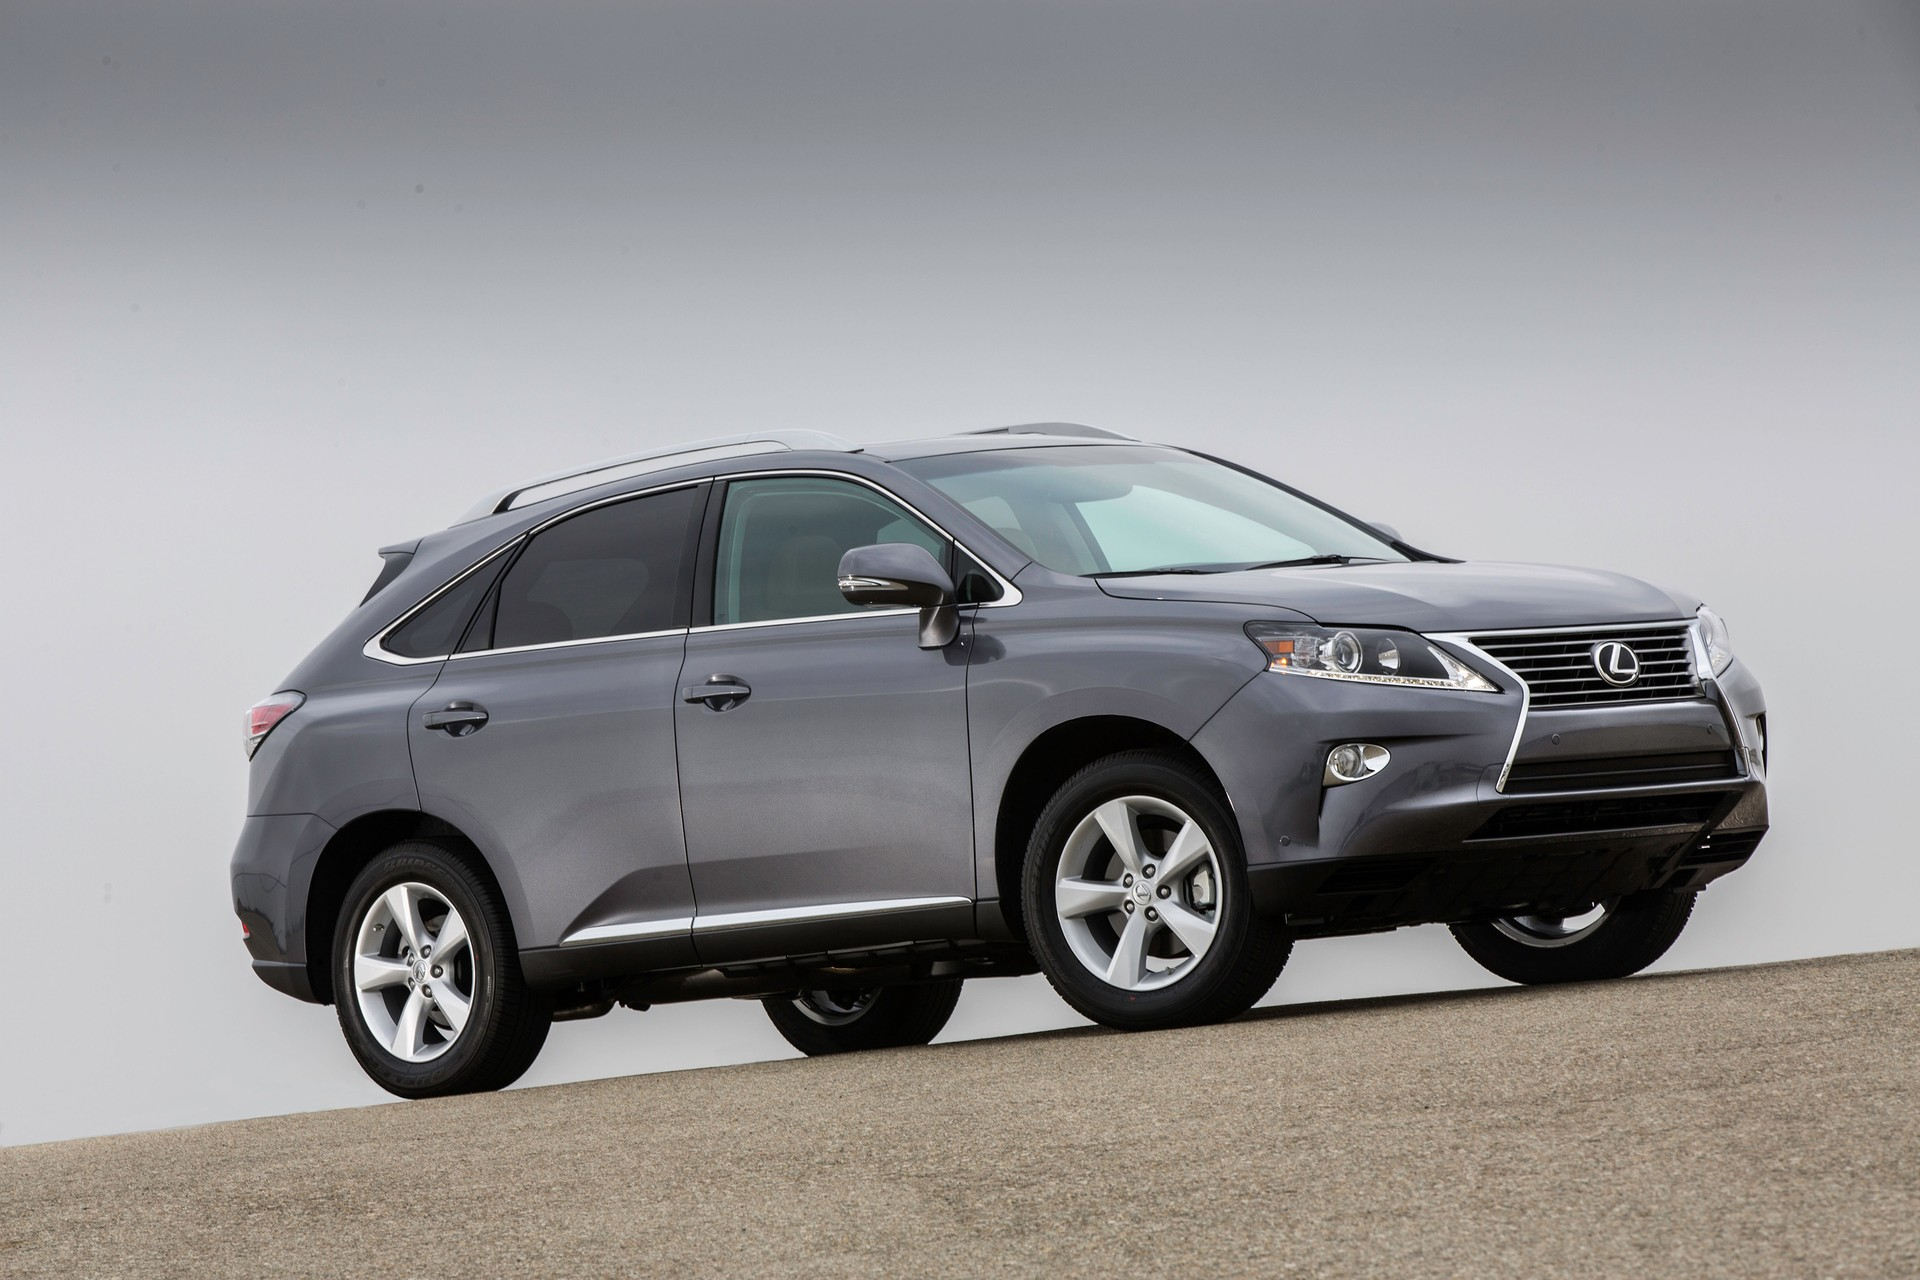 2016 Lexus RX To Shed Weight With Aluminum